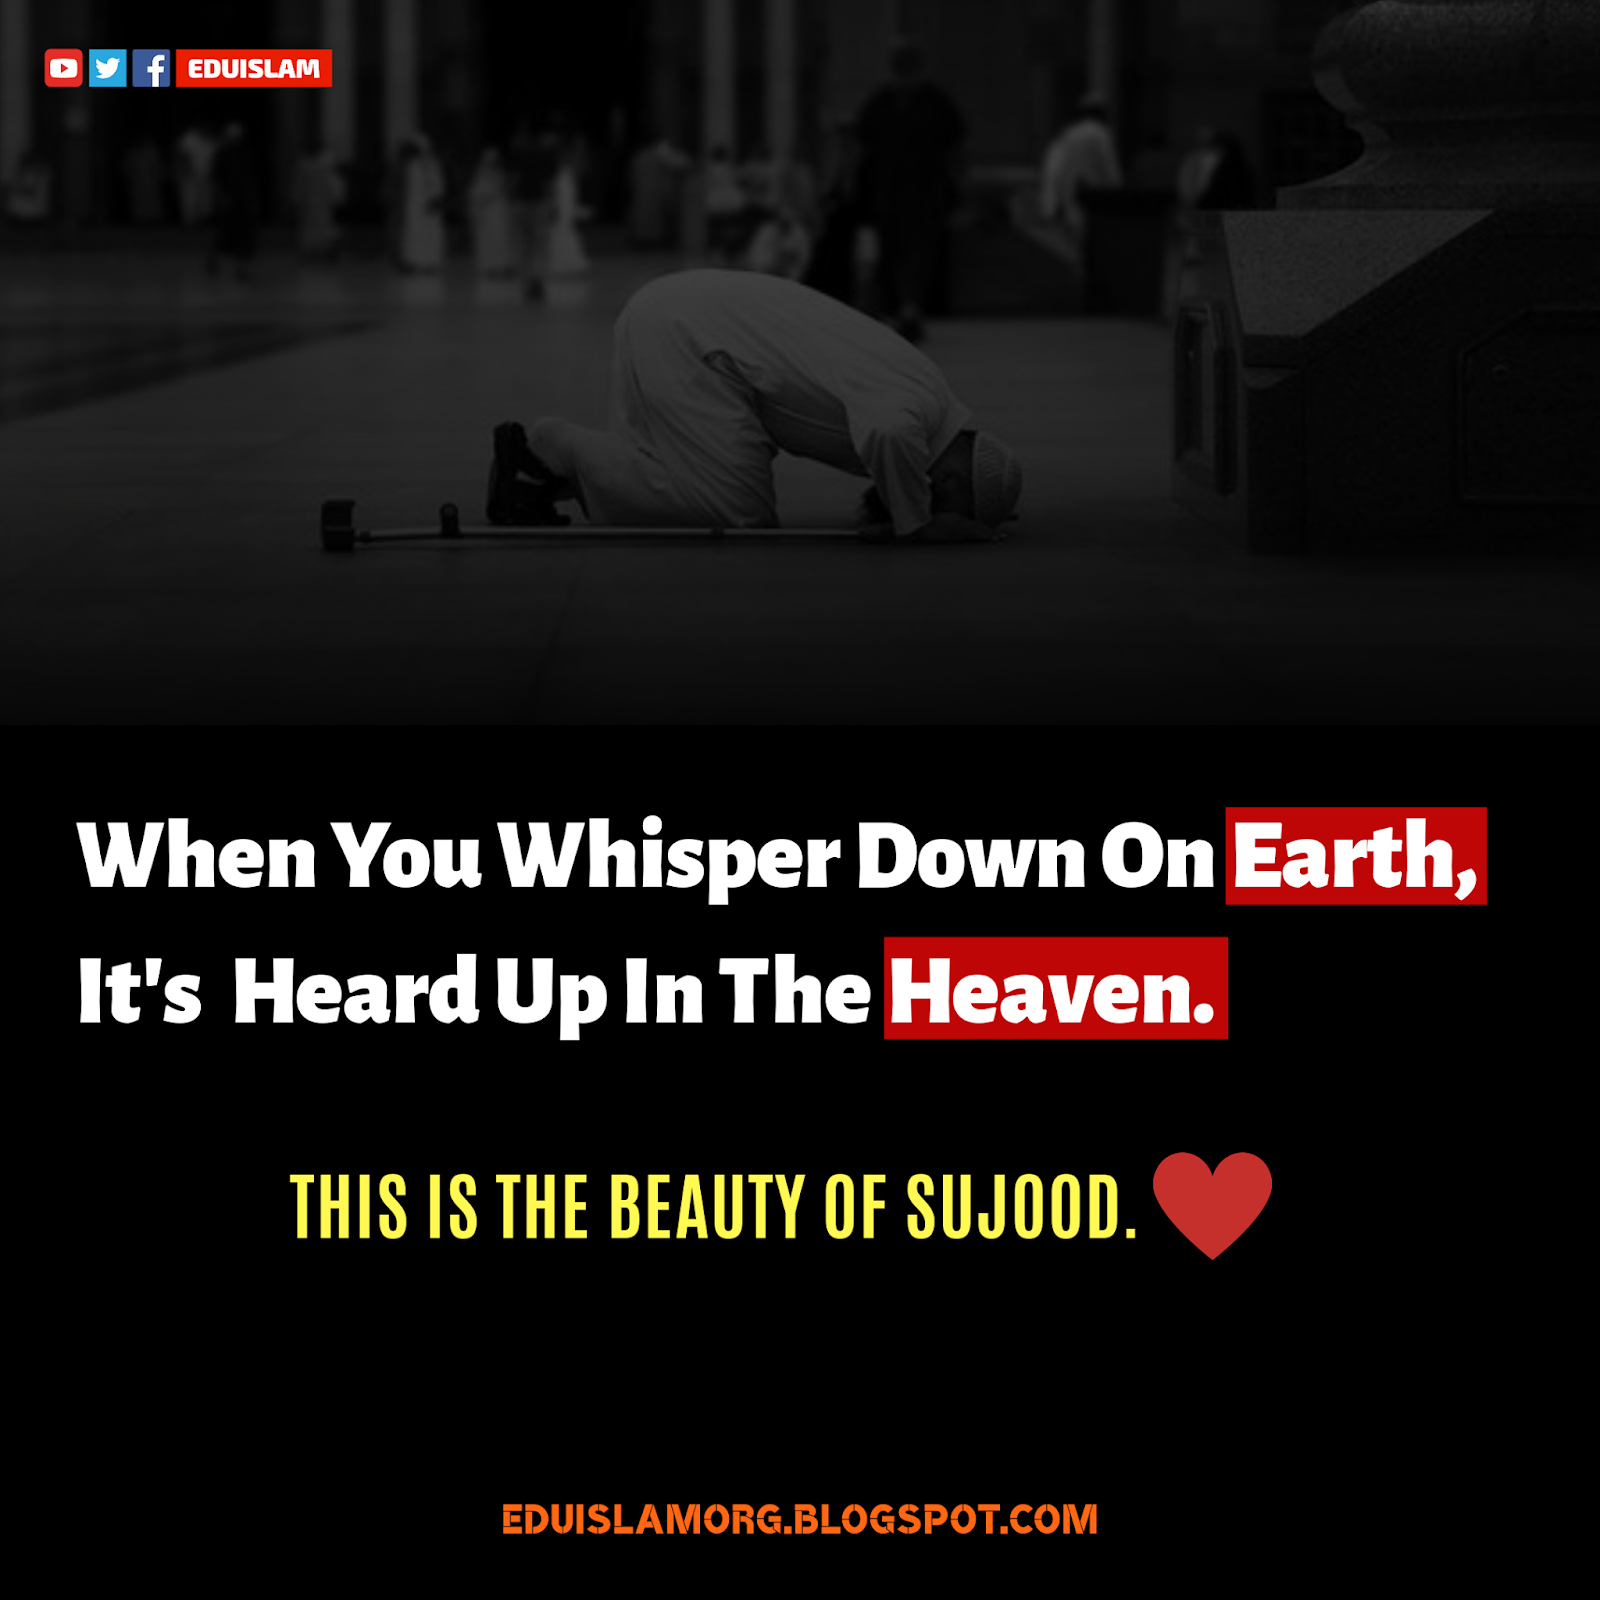 About sujood, sujood quotes, when you whisper, Dua accepted in Sujood, EduIslam